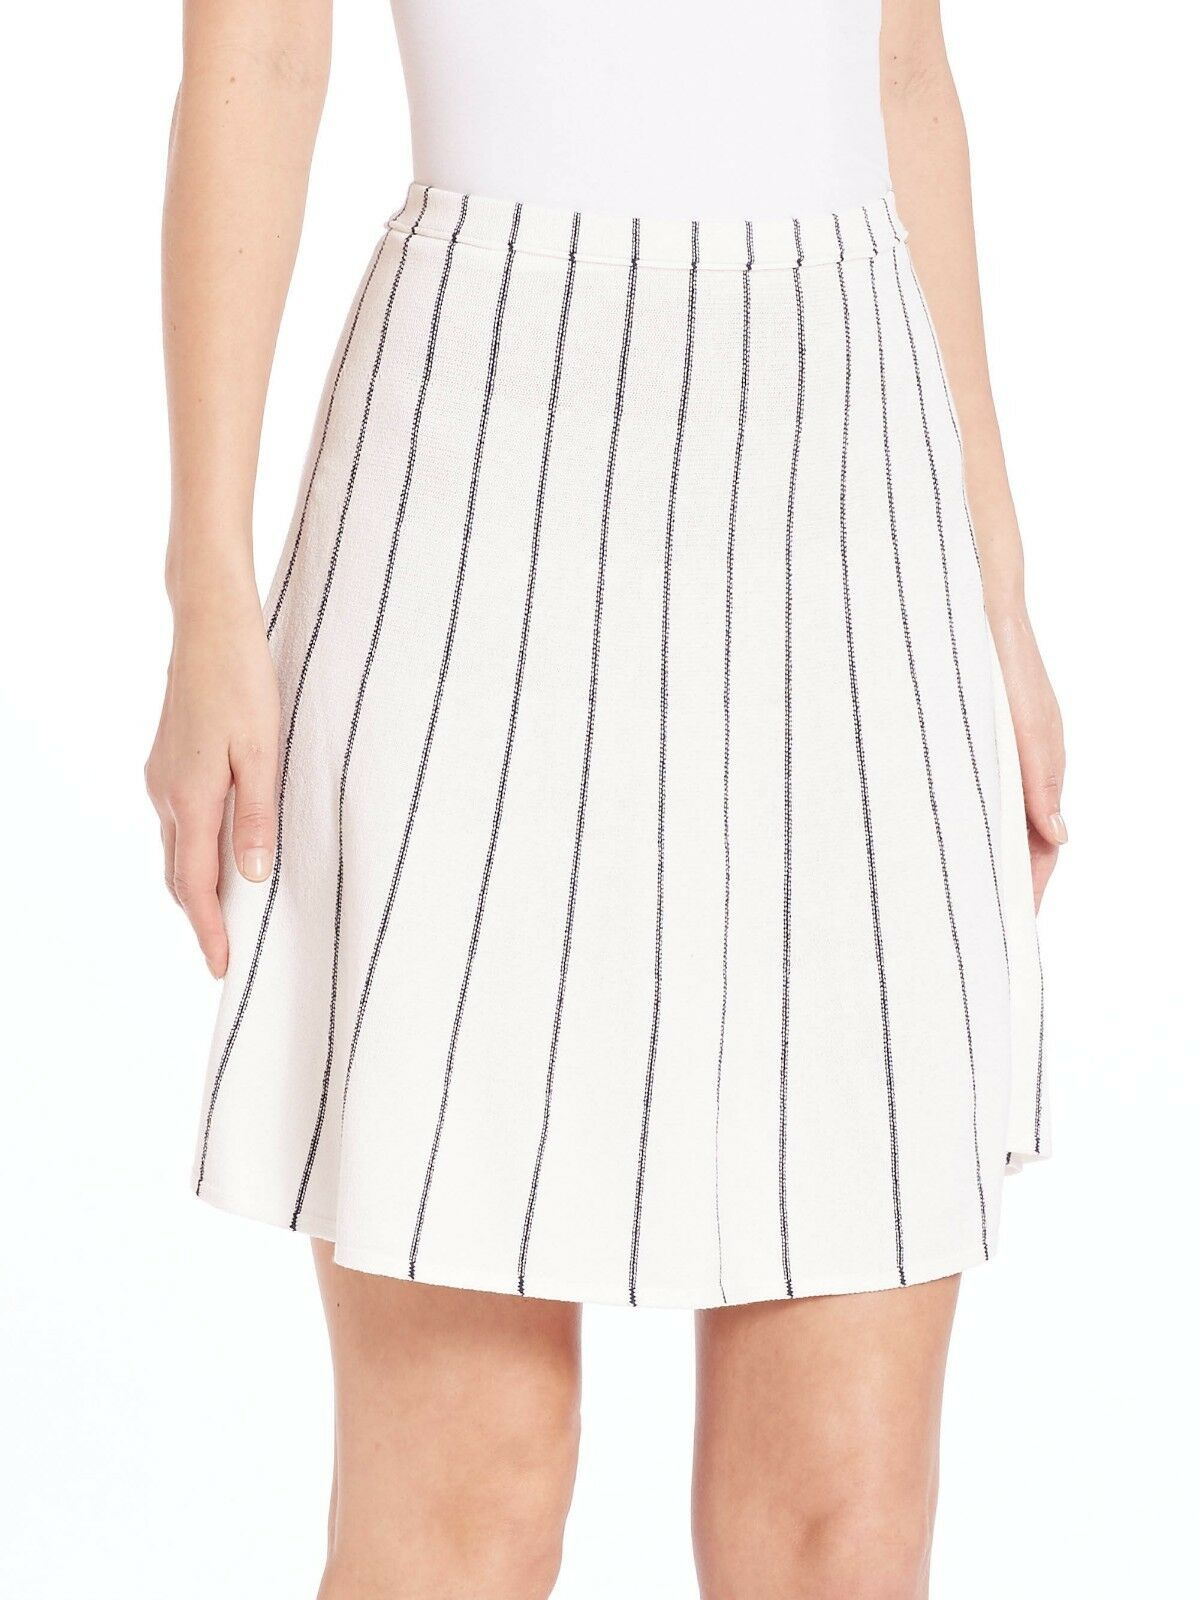 Theory Lotamee Evian Knit Skirt Ppinkcco Ivory Navy Striped A-Line M  275 9130